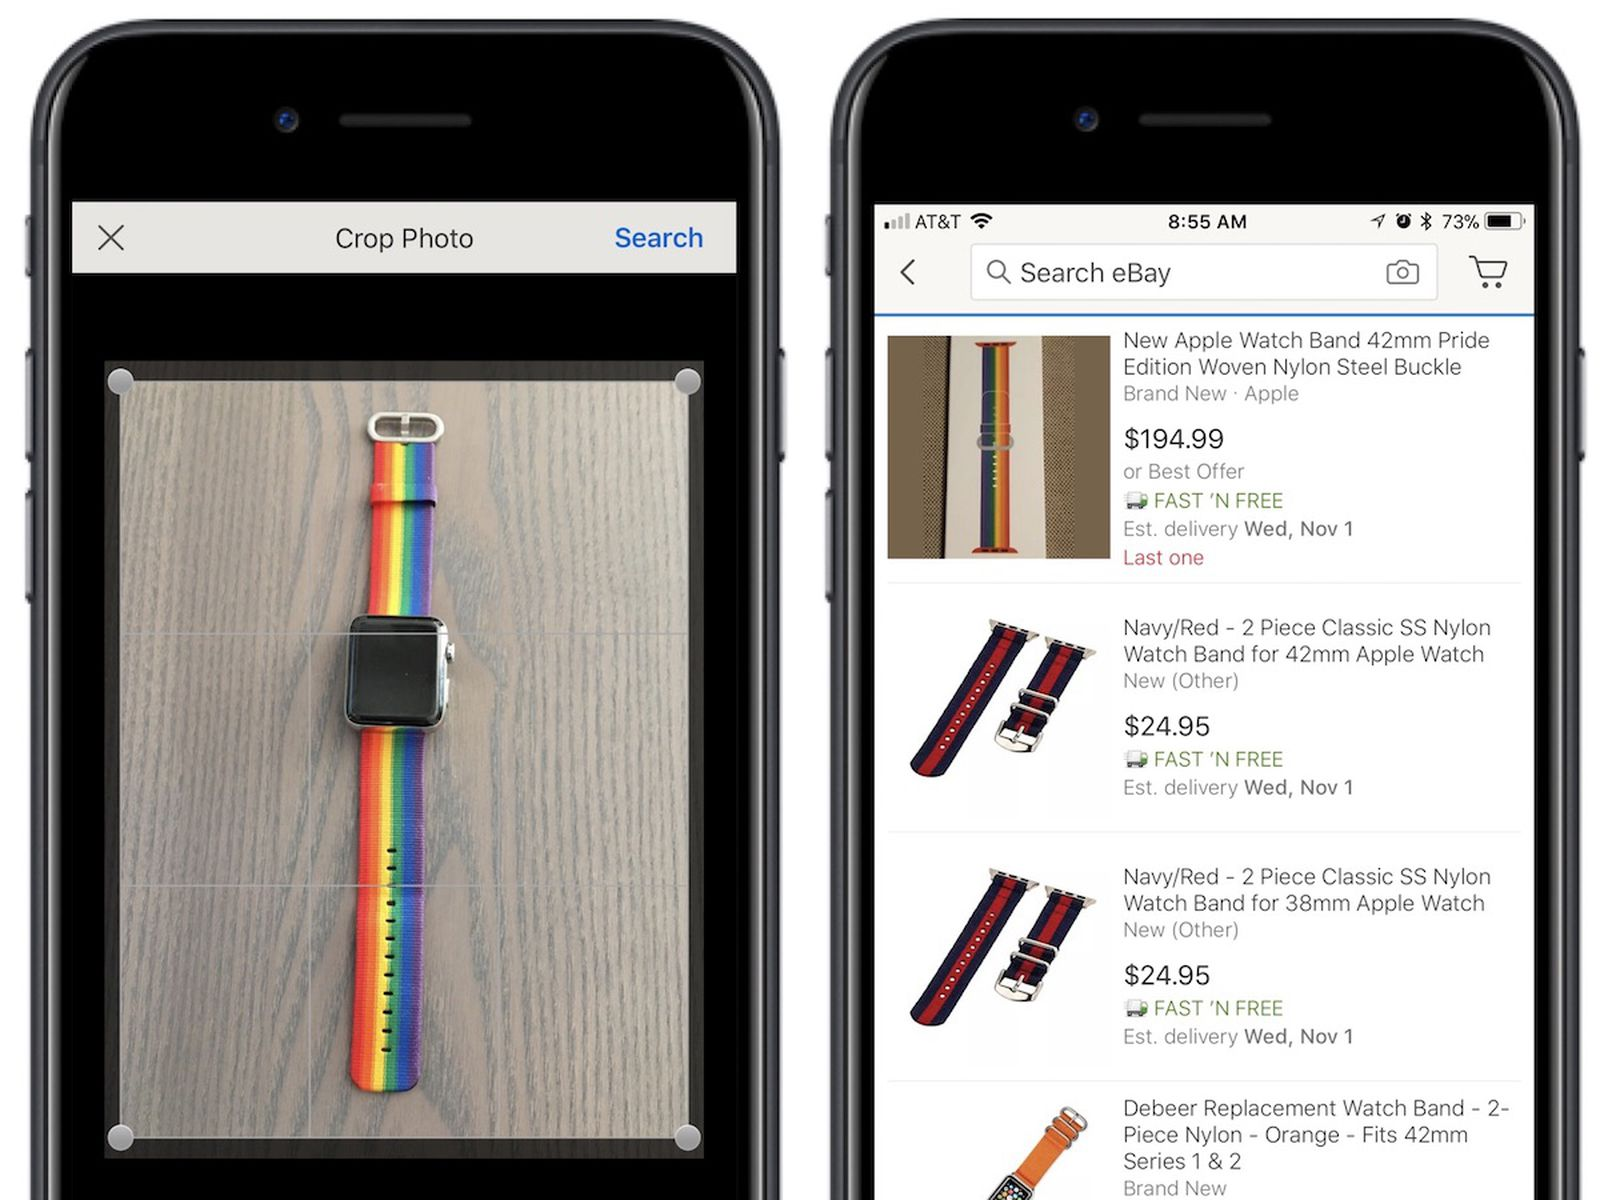 Ebay S New Image Search Feature Is Now Live Within Ios App Macrumors